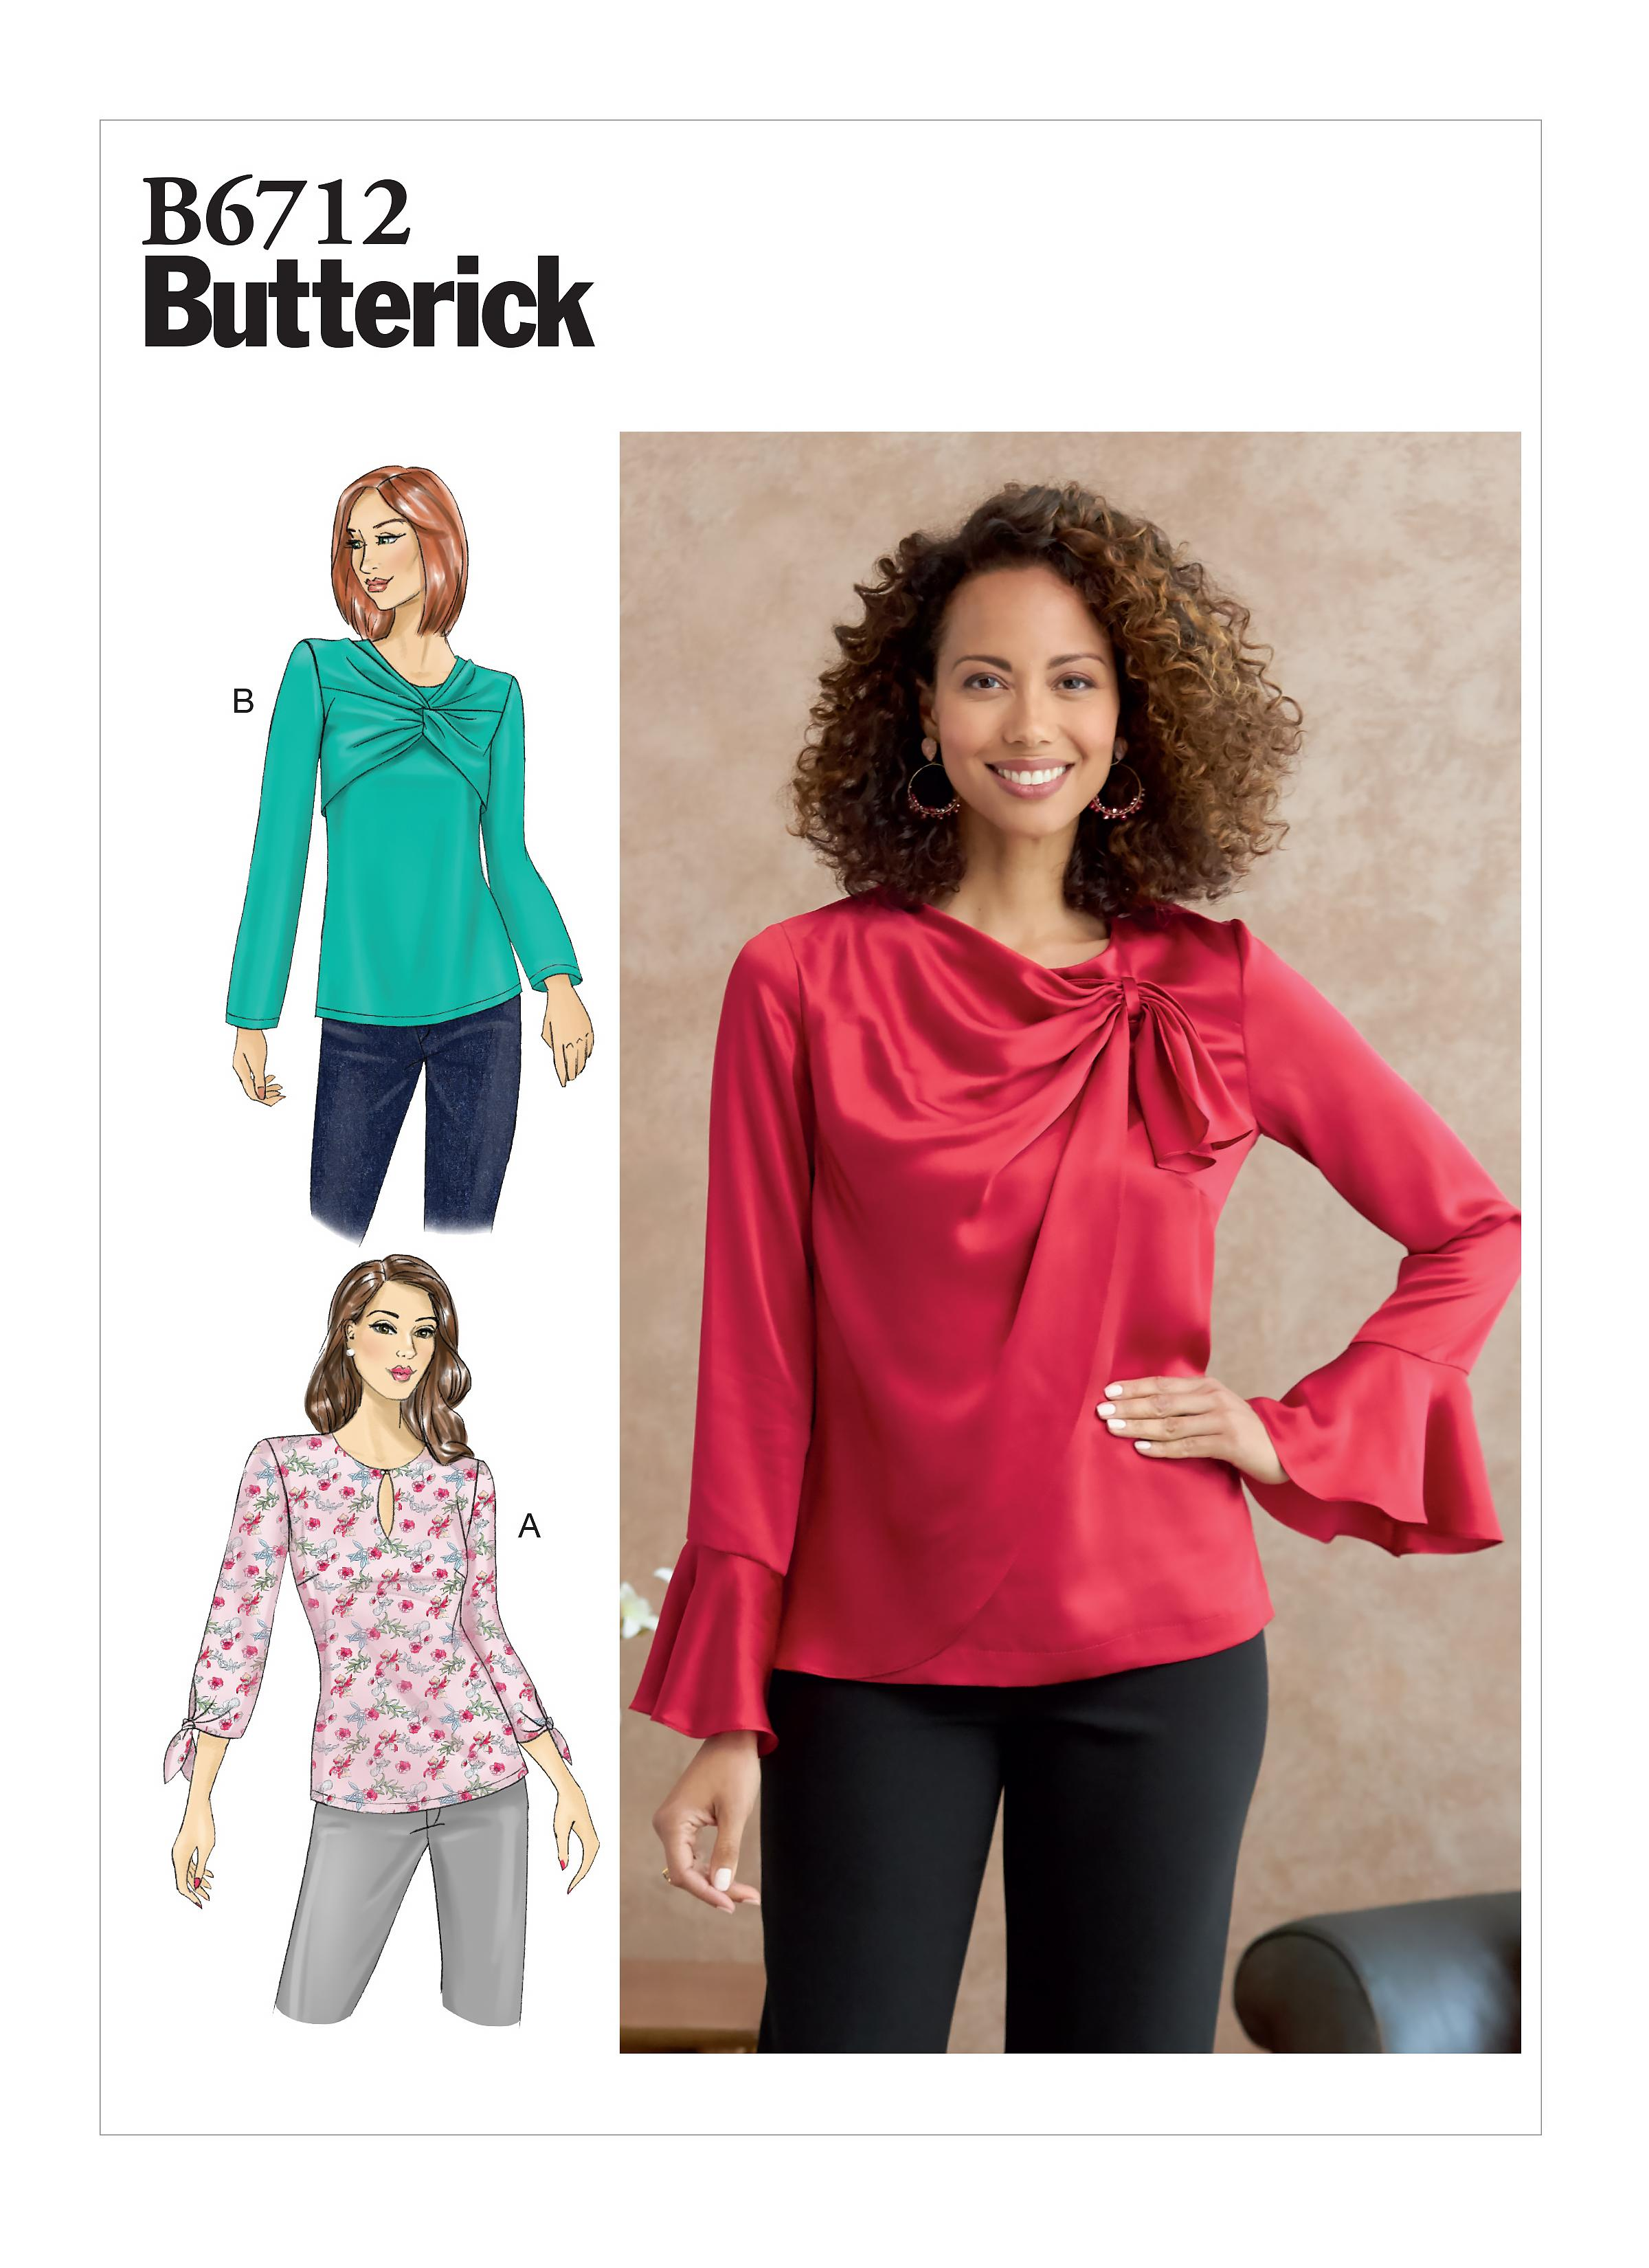 Butterick B6712 Misses' Top